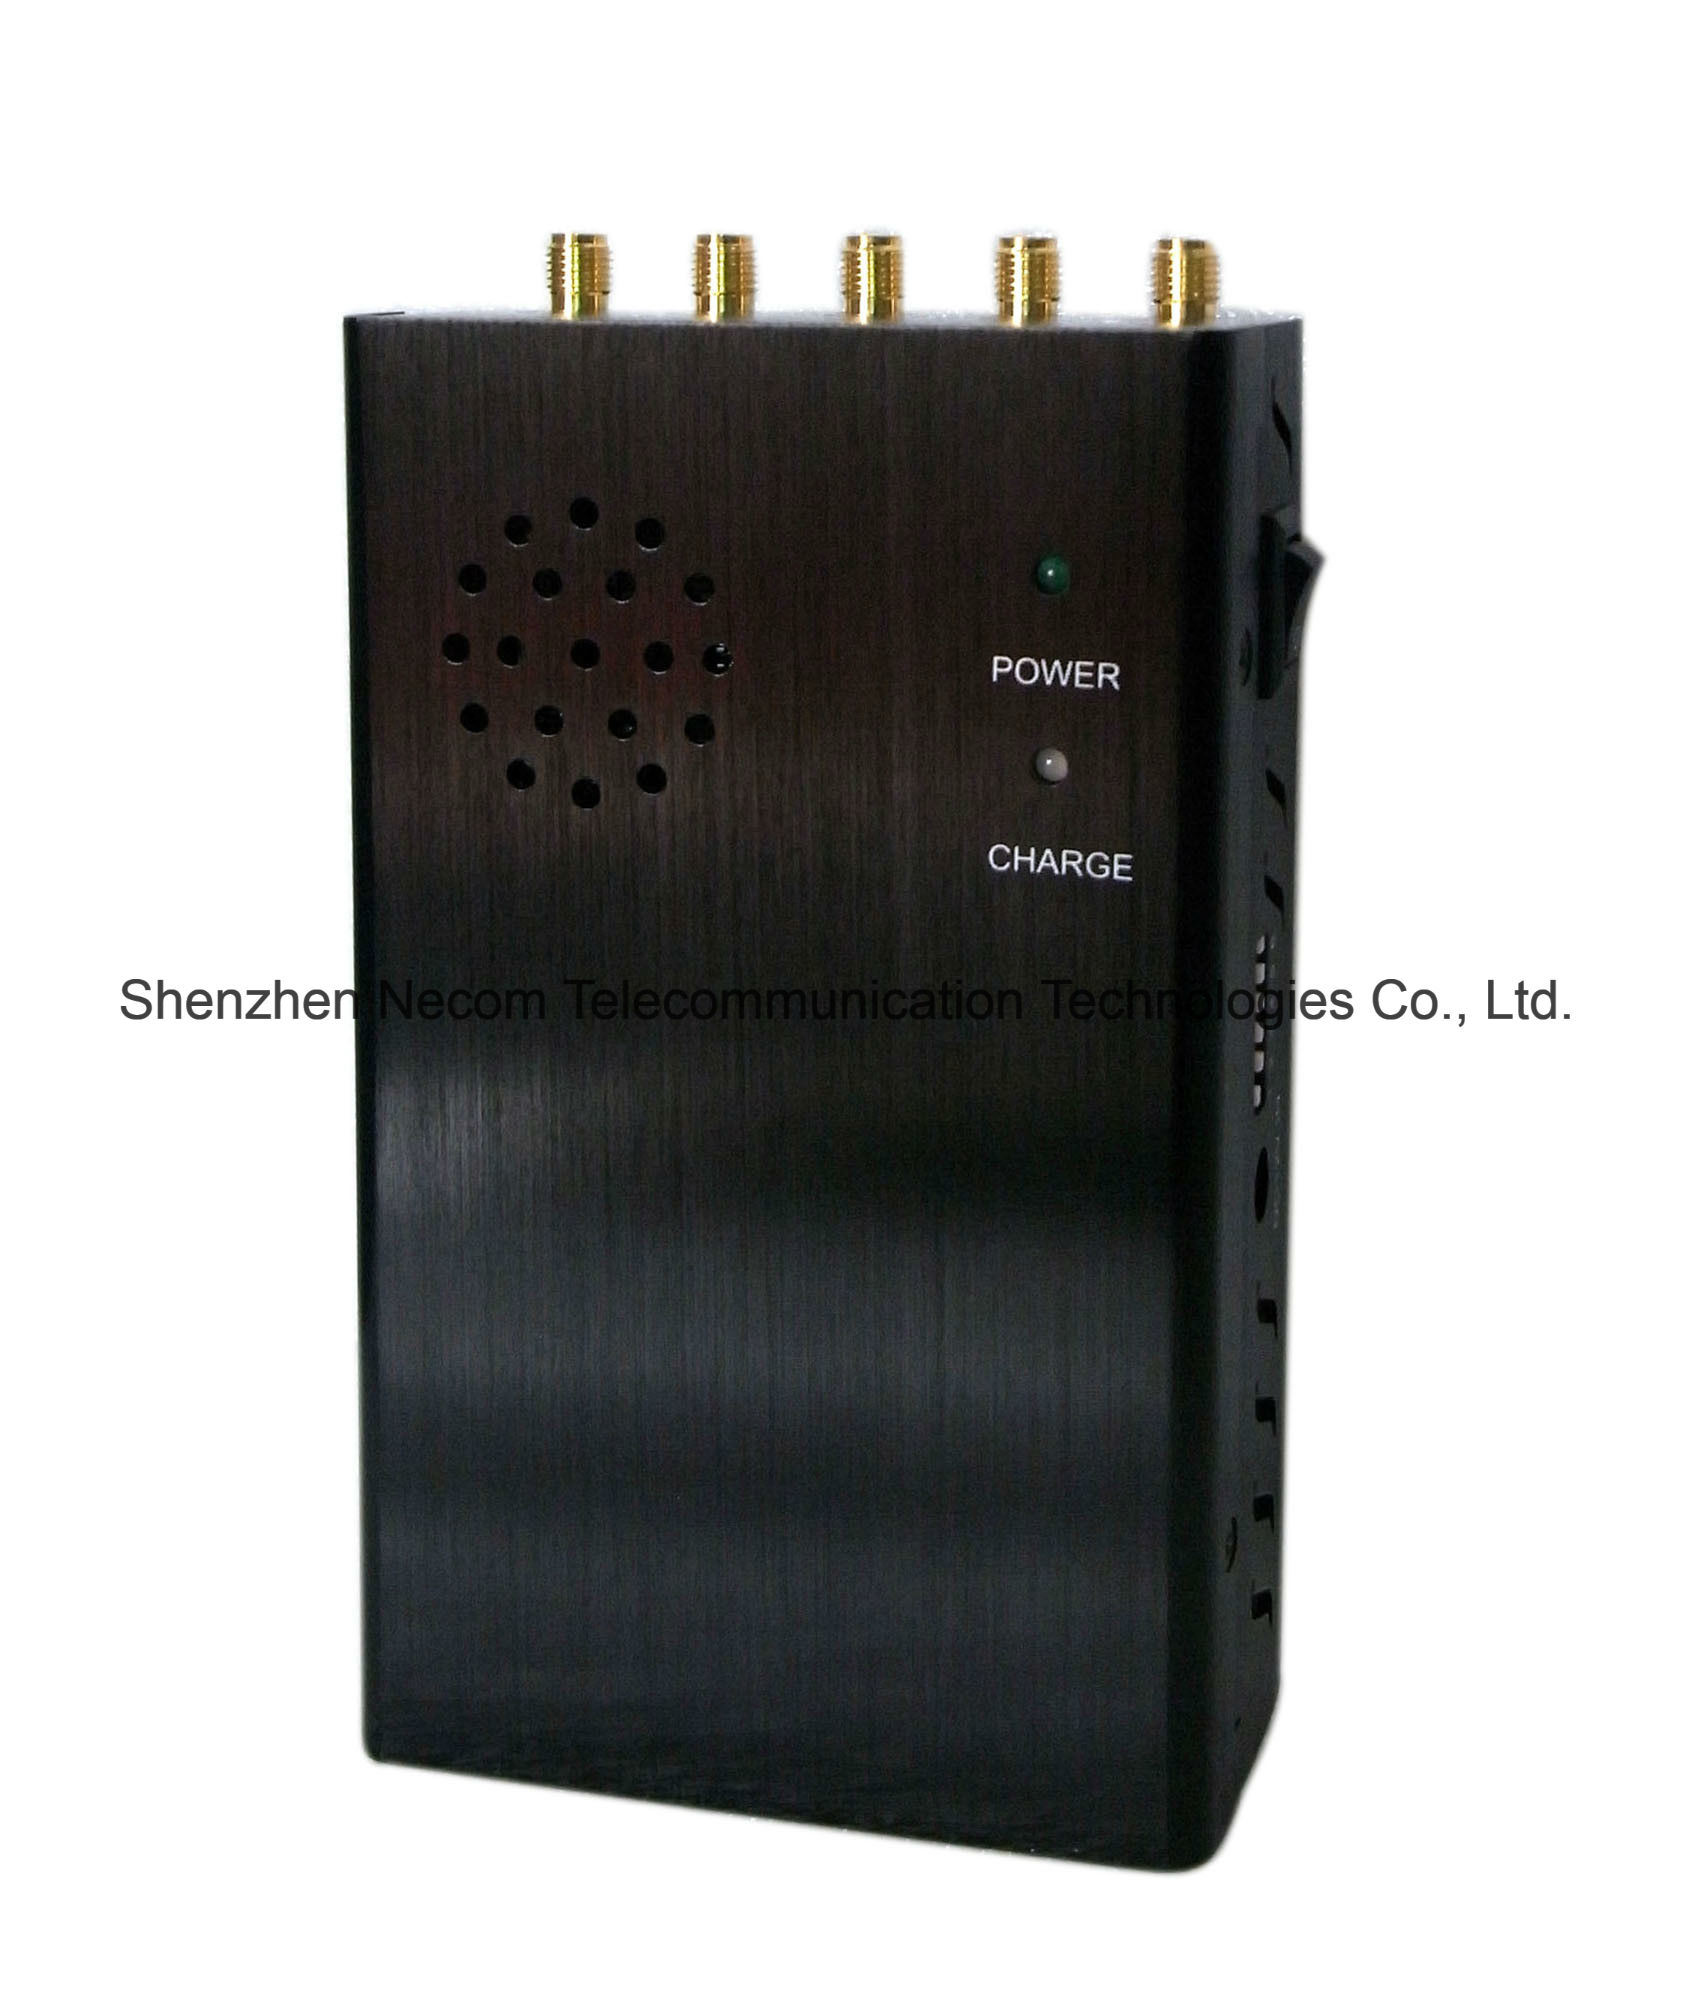 mobile phones shopping - China Wireless Signal Jammer with Good Quality&Favourable Price Jamming for Wired Camera, GPS Tracker, Mobile Phones, GSM Jammer/GPS Jammer /Cell Phone Jammer - China 5 Band Signal Blockers, Five Antennas Jammers